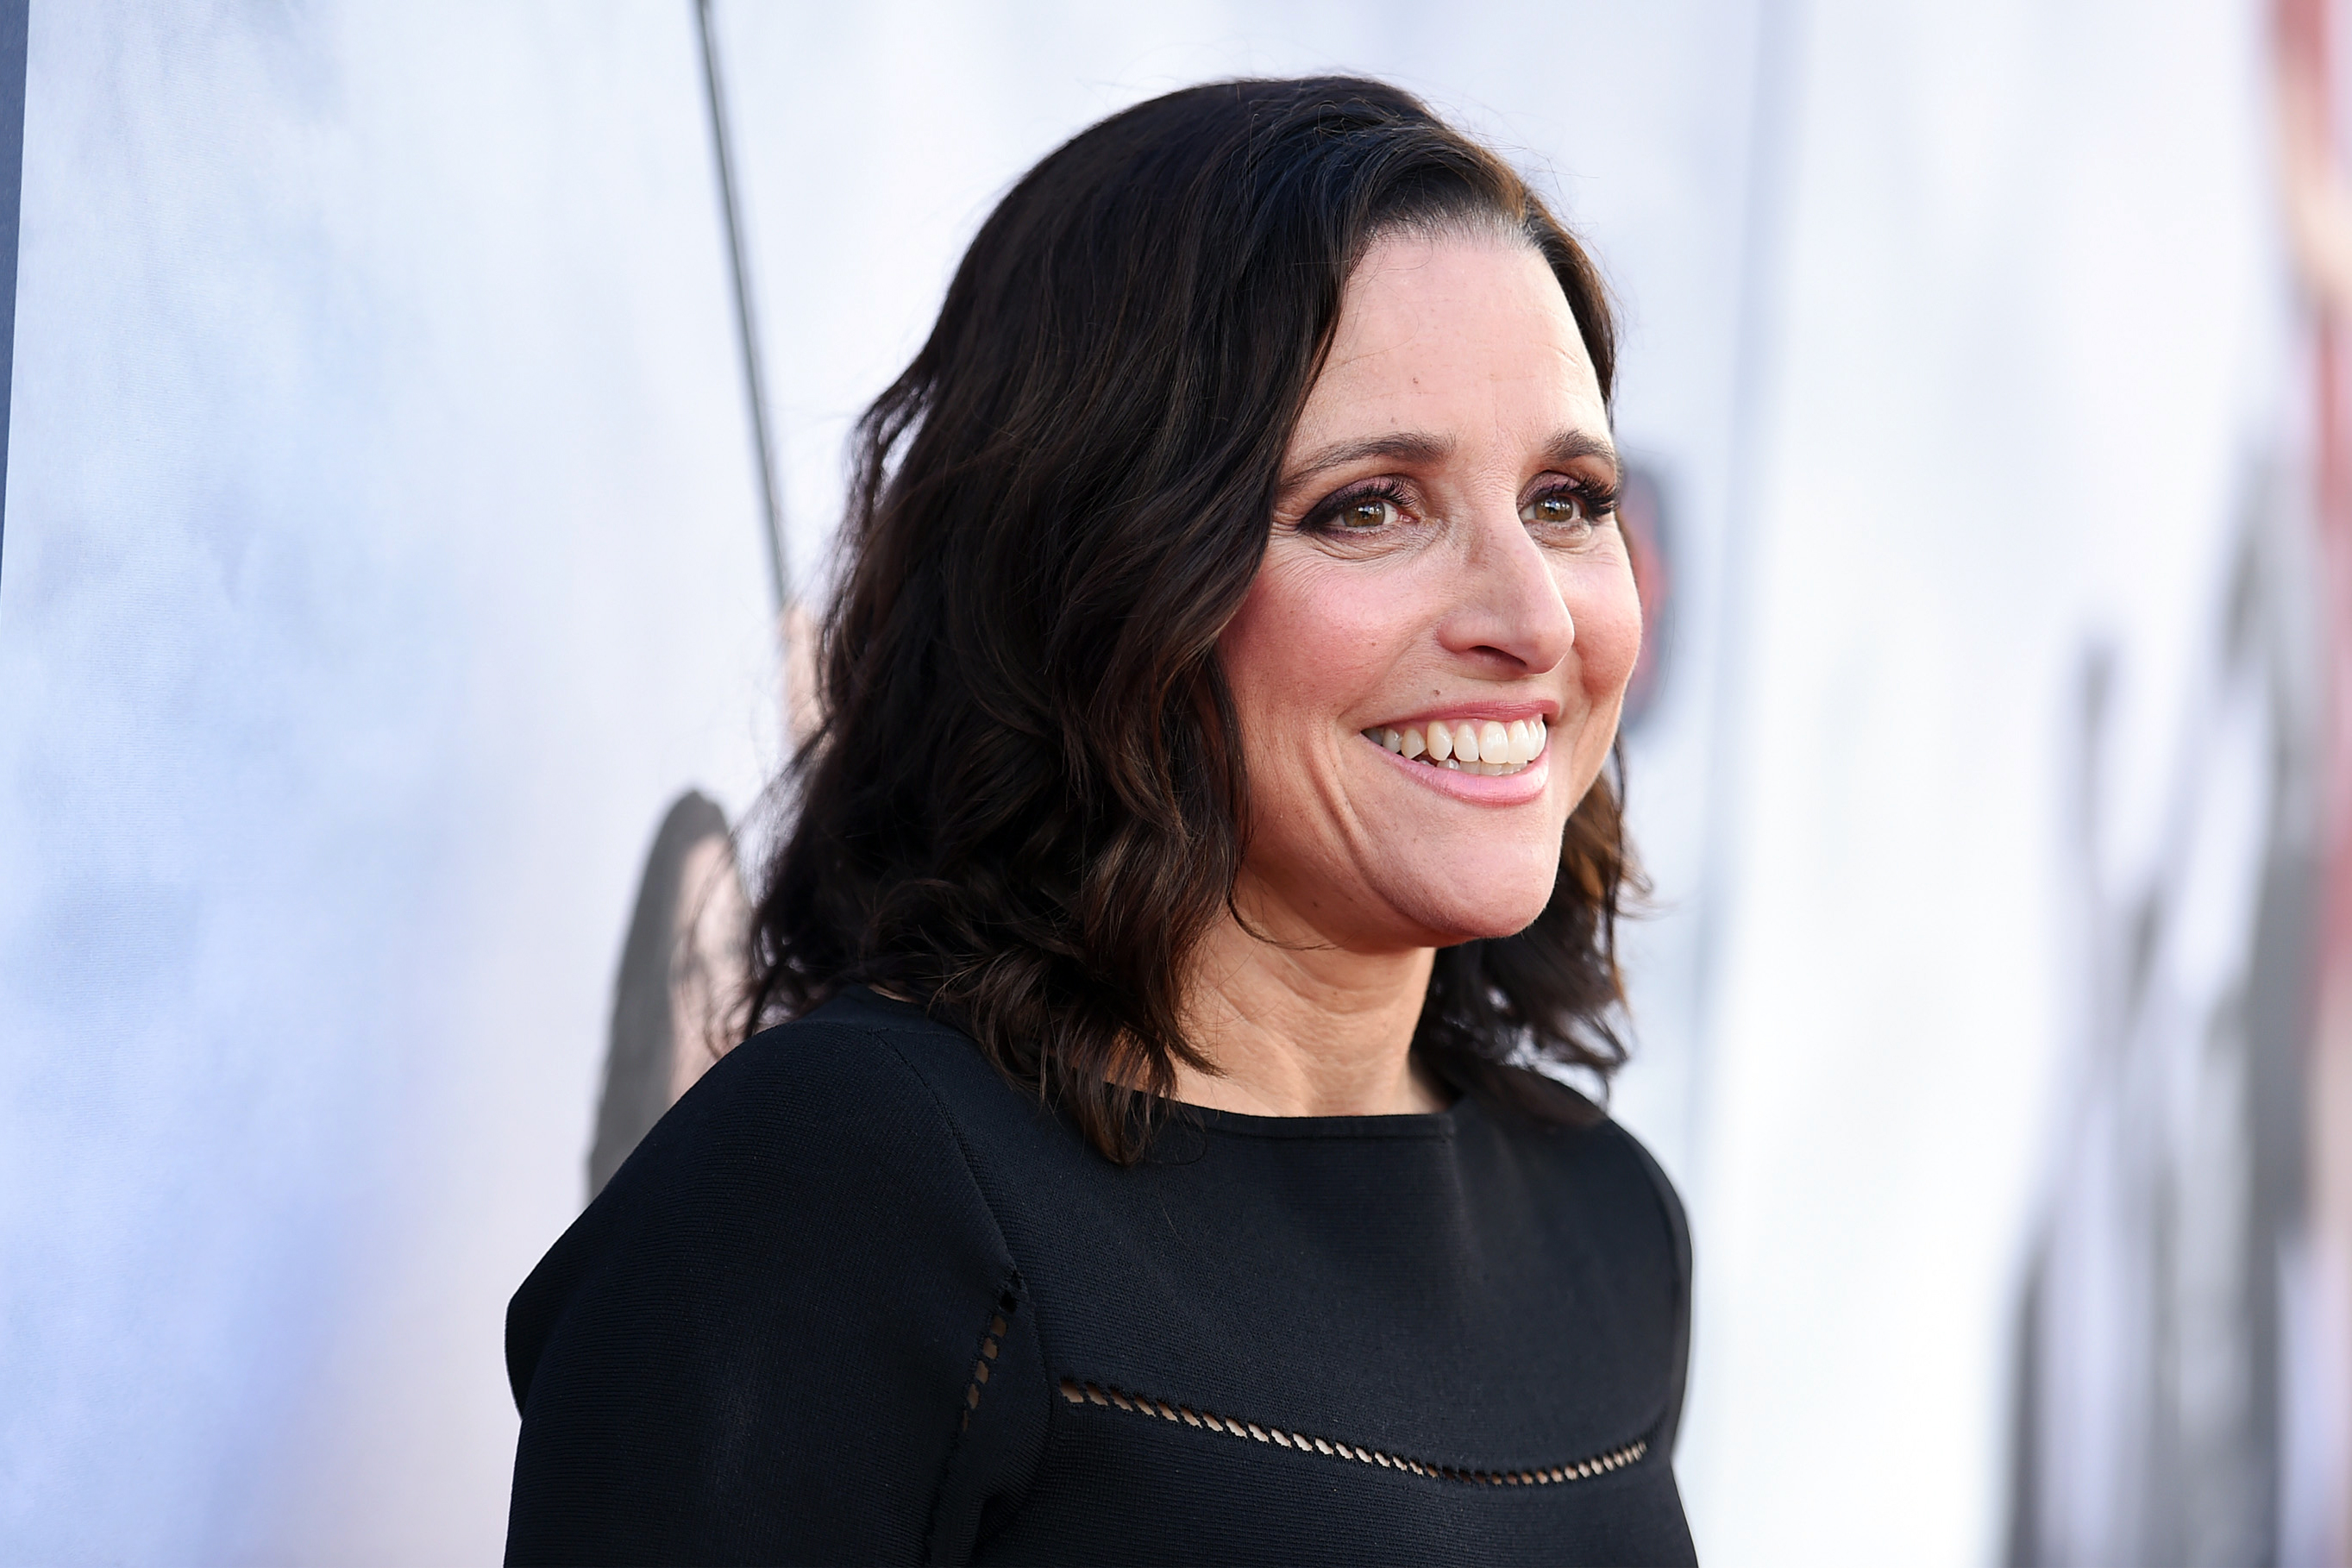 Video Julia Louis-Dreyfus nudes (89 photos), Ass, Cleavage, Feet, cameltoe 2020